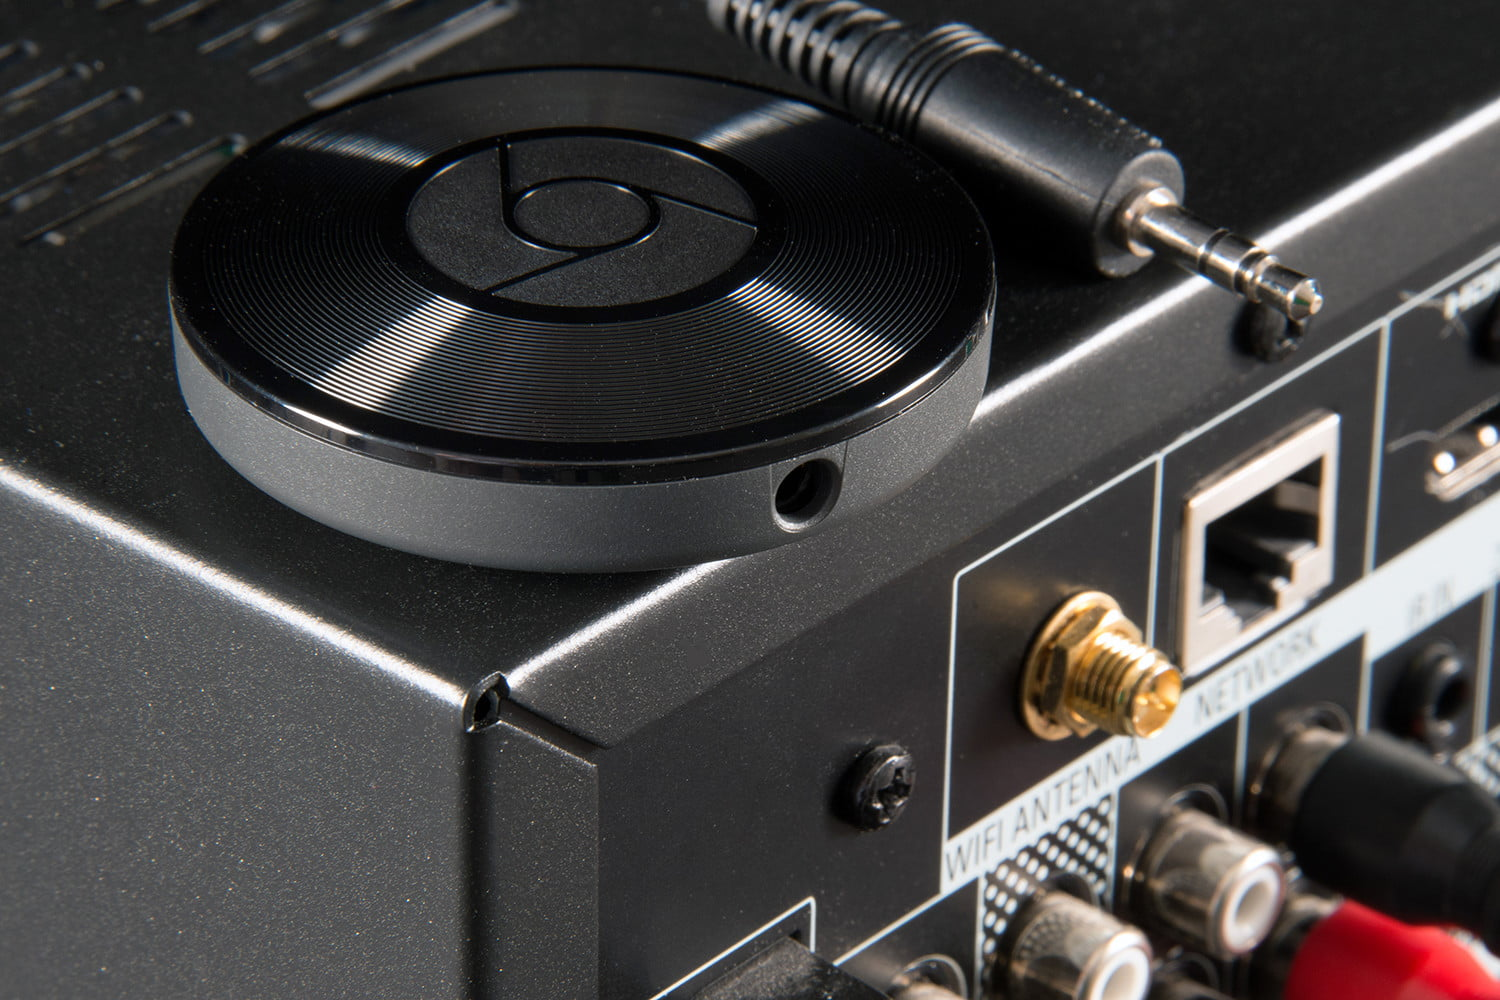 how to connect laptop to chromecast audio